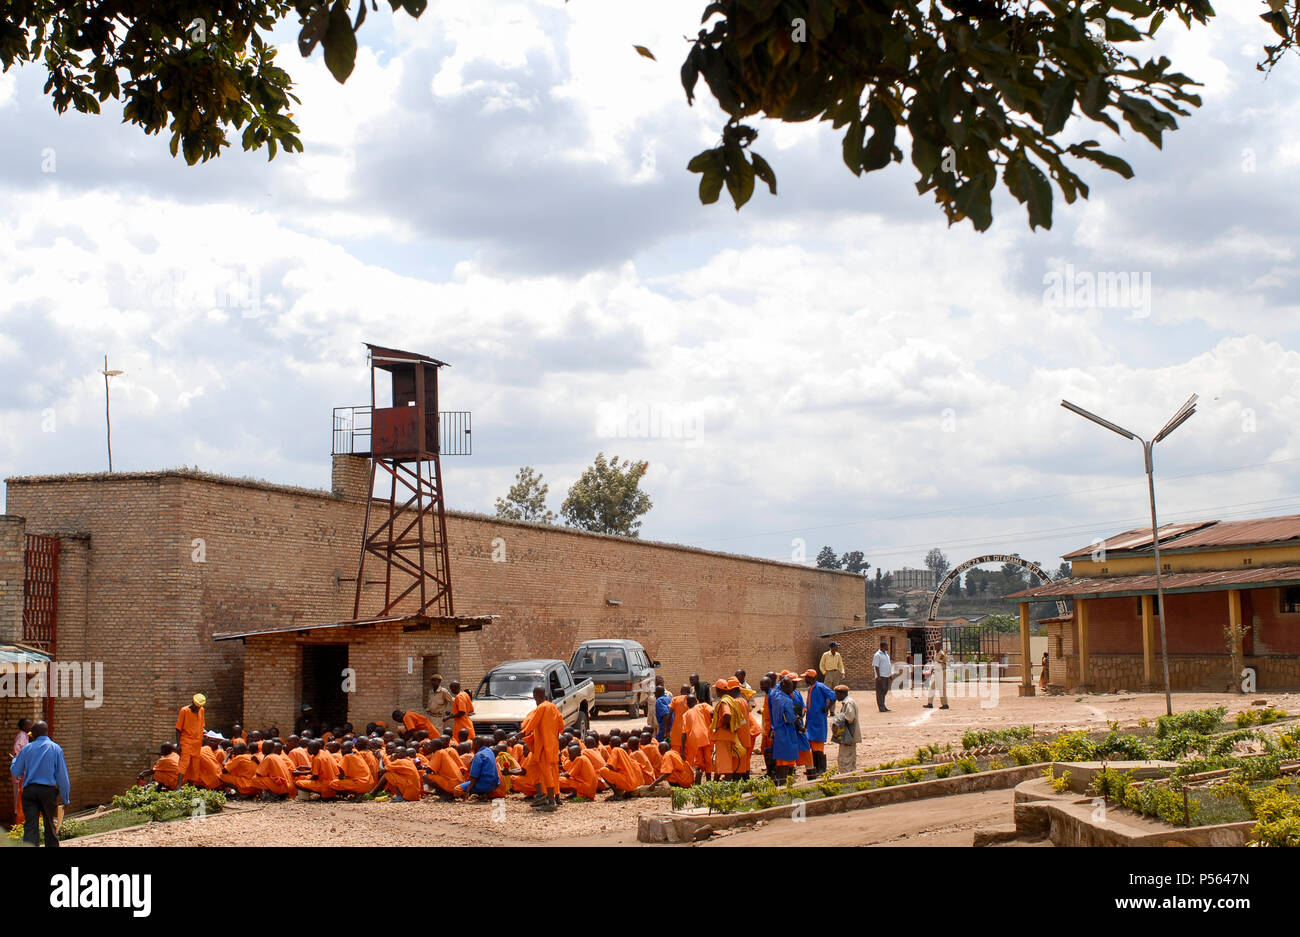 RWANDA, Gitarama , jail with 7500 prisoner , mostly for Hutu for genocide crimes , prisoner in orange clothes: already sentenced, pink clothes: waiting for accusation / RUANDA, Gitarama , Gefaengnis mit 7500 Haeftlingen , viele sind Hutu und wegen Genozid Verbrechen inhaftiert , Haeftlingskleidung orange: bereits verurteilt , rosa: warten auf Anklage - Stock Image